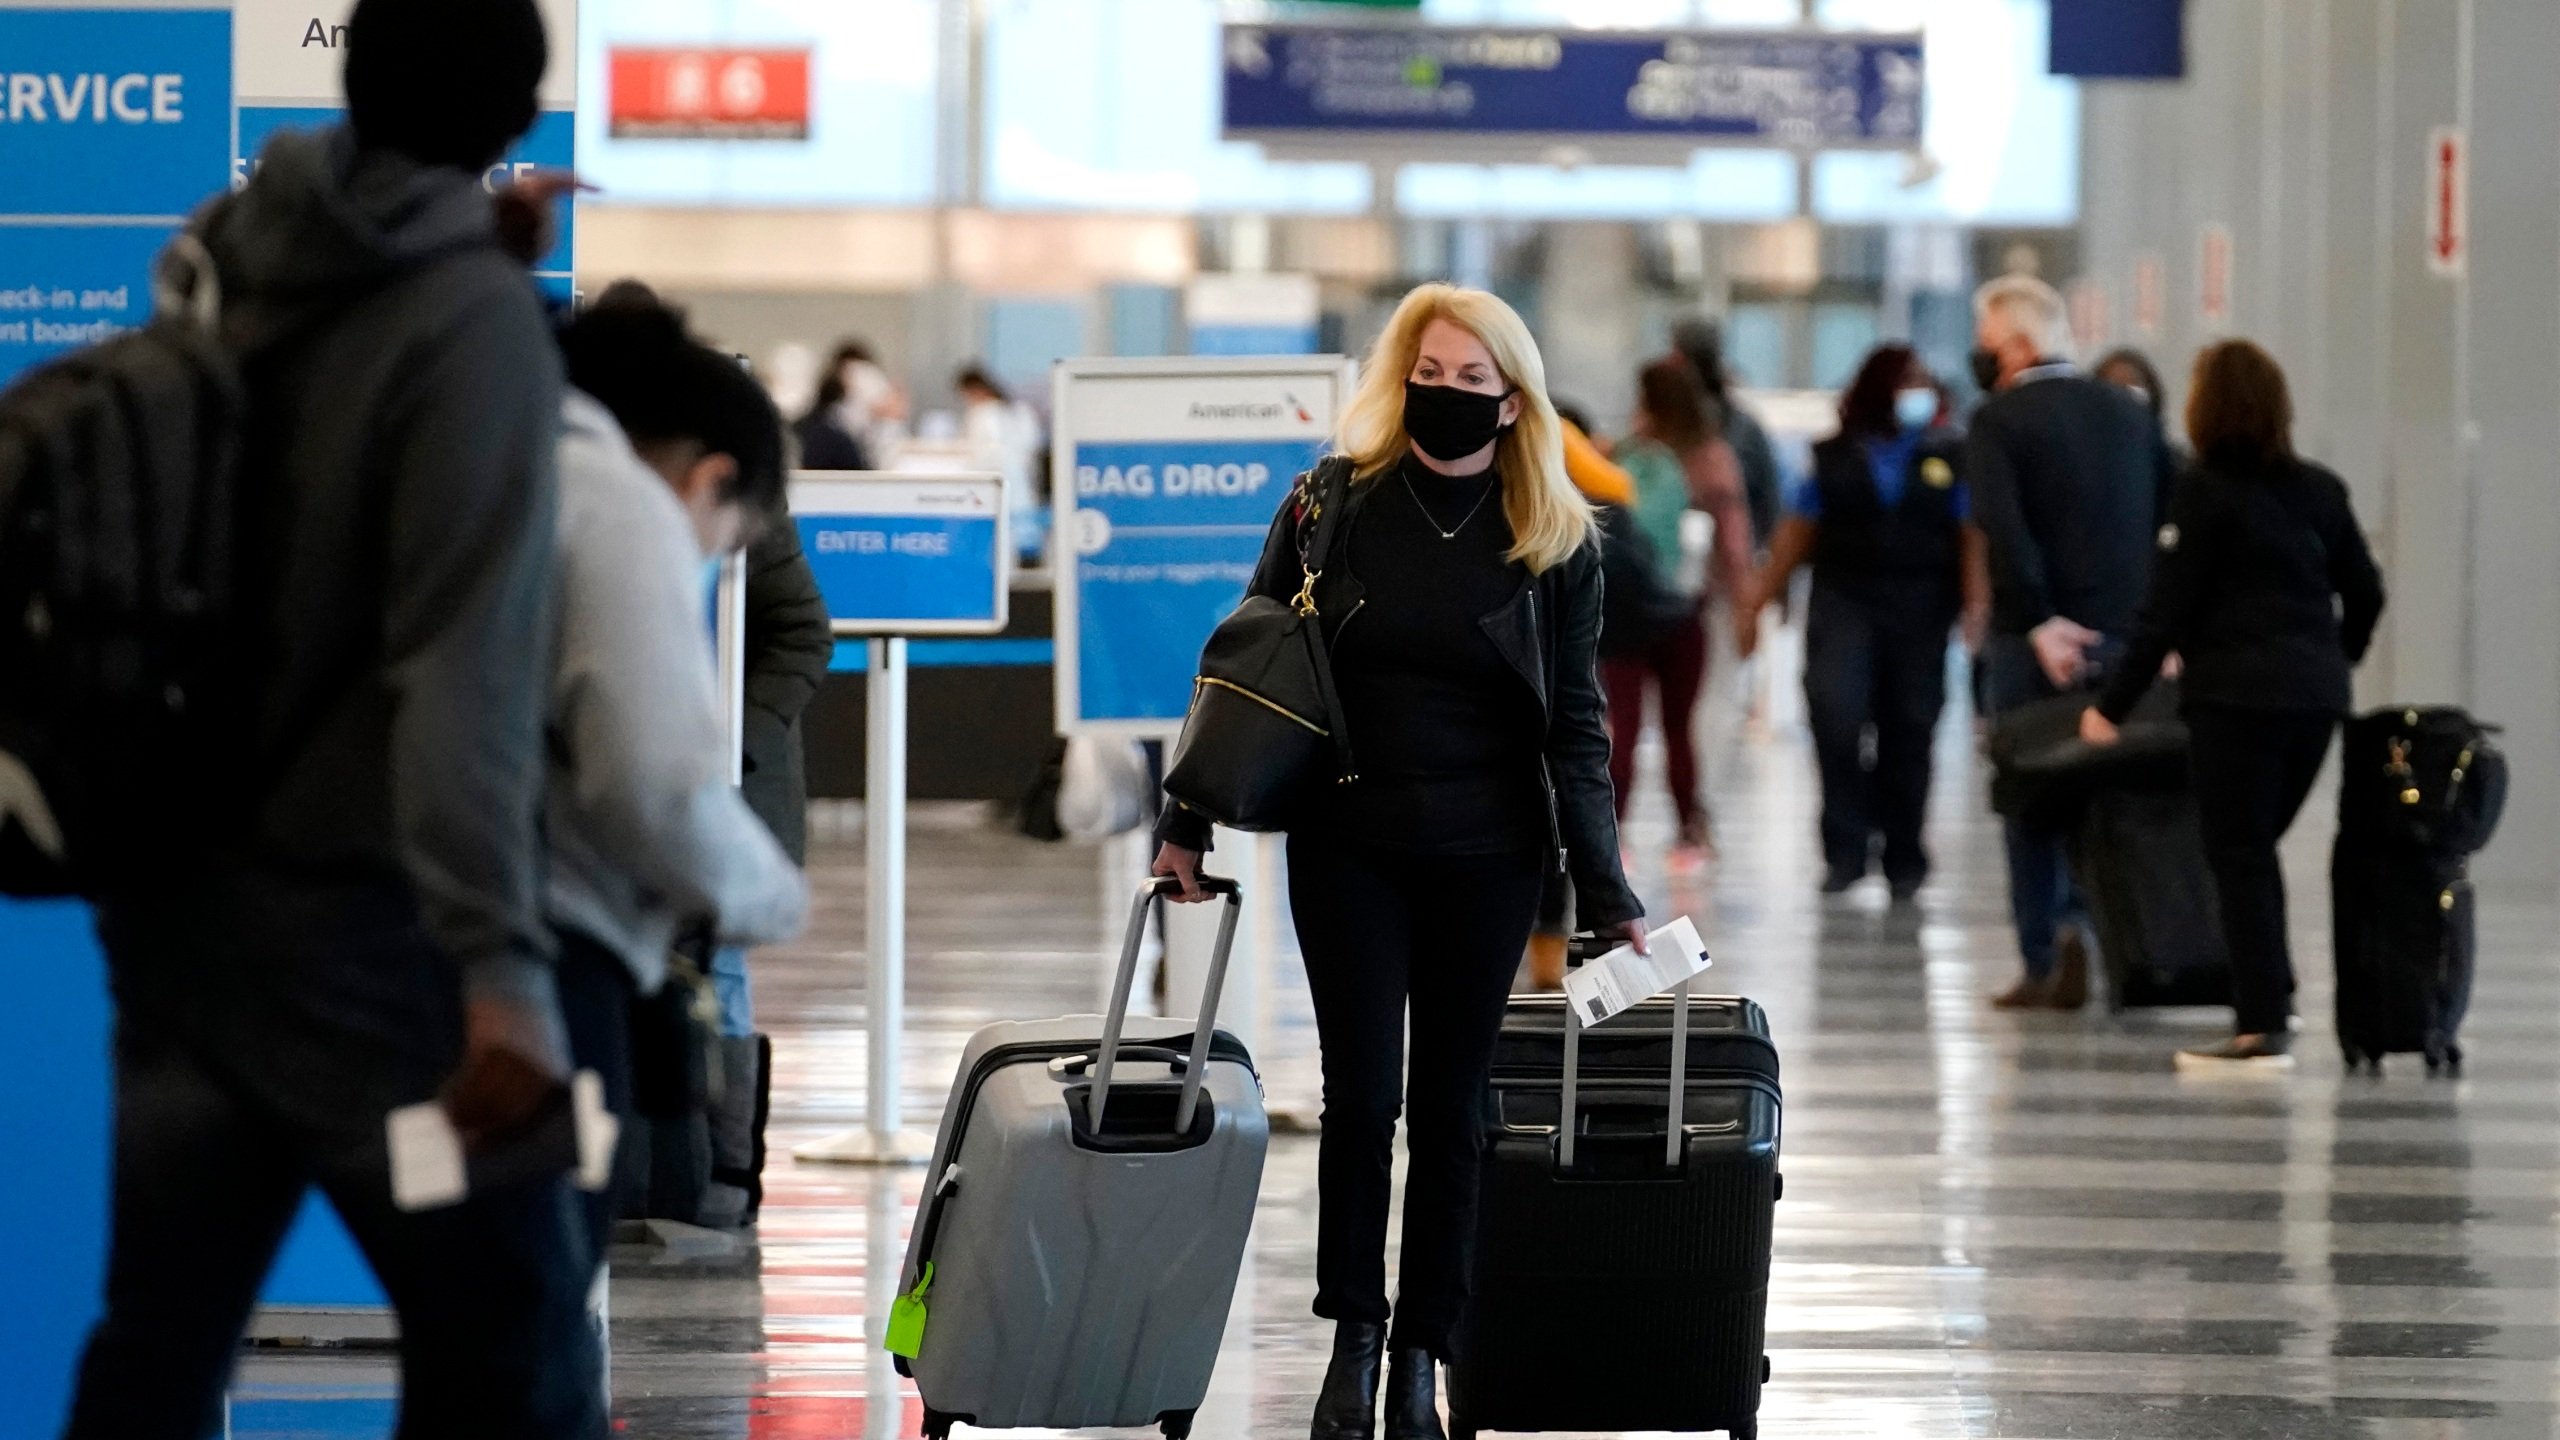 In this Sunday, Nov. 29, 2020 file photo, a traveler wears a mask as she walks through Terminal 3 at O'Hare International Airport in Chicago. The Transportation Security Administration said nearly 1.2 million people went through U.S. airports on Sunday, the highest number since the coronavirus pandemic gripped the country back in March, despite the pleadings of public health experts for people to stay home over Thanksgiving. (AP Photo/Nam Y. Huh, File)